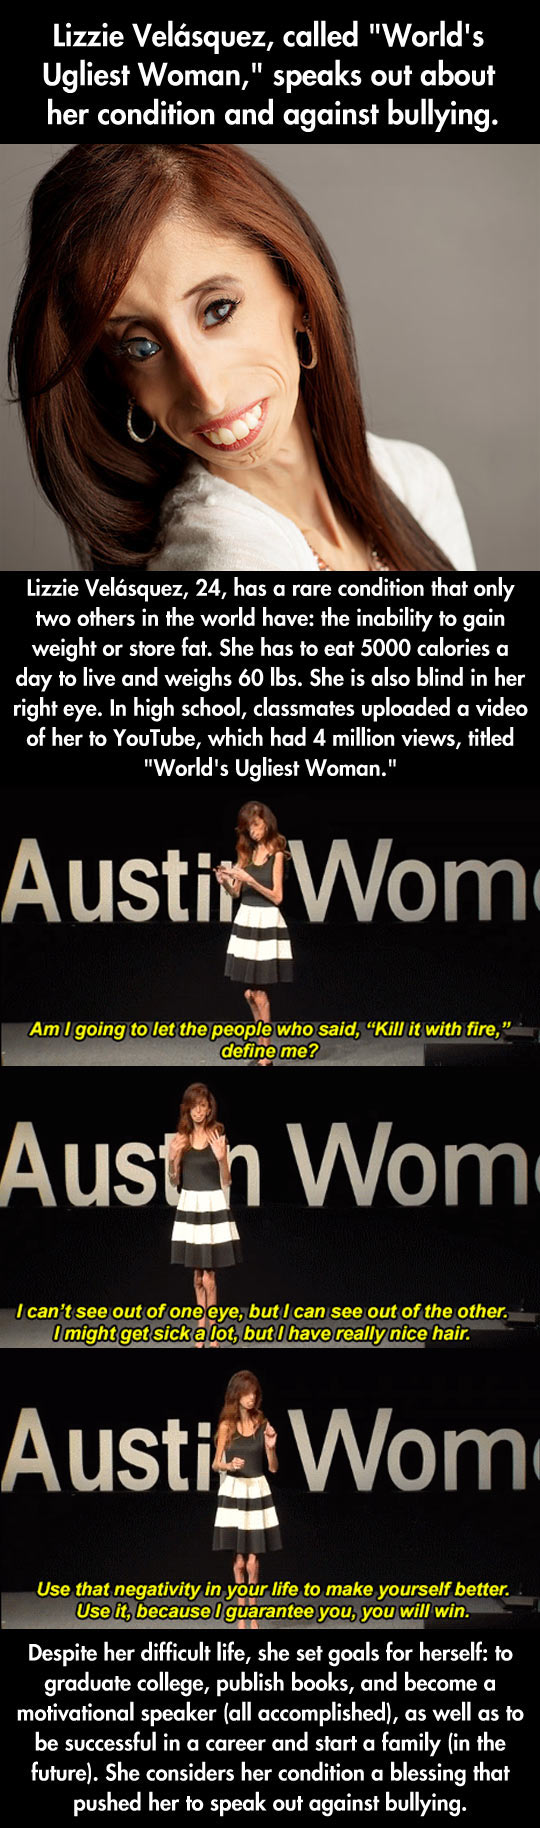 Lizzie Velasquez, A Role Model